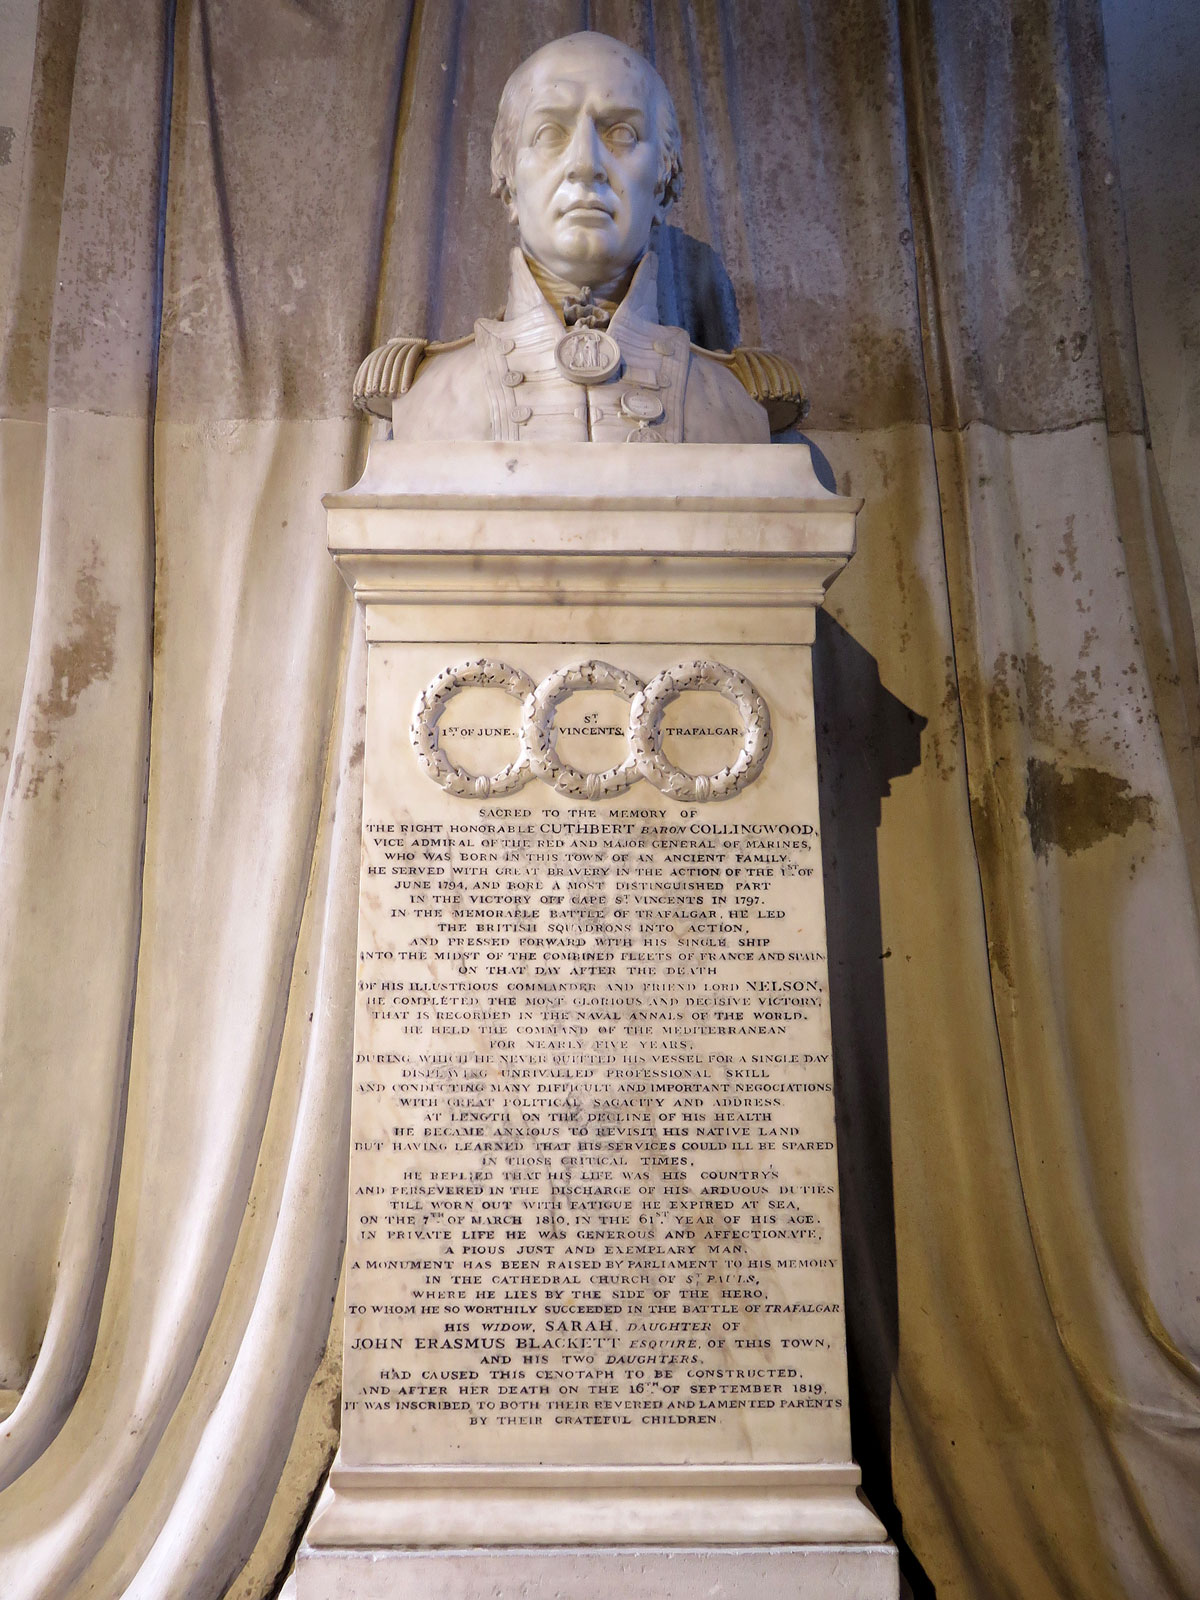 The Collingwood Memorial in St Nicholas Cathedral, Newcastle